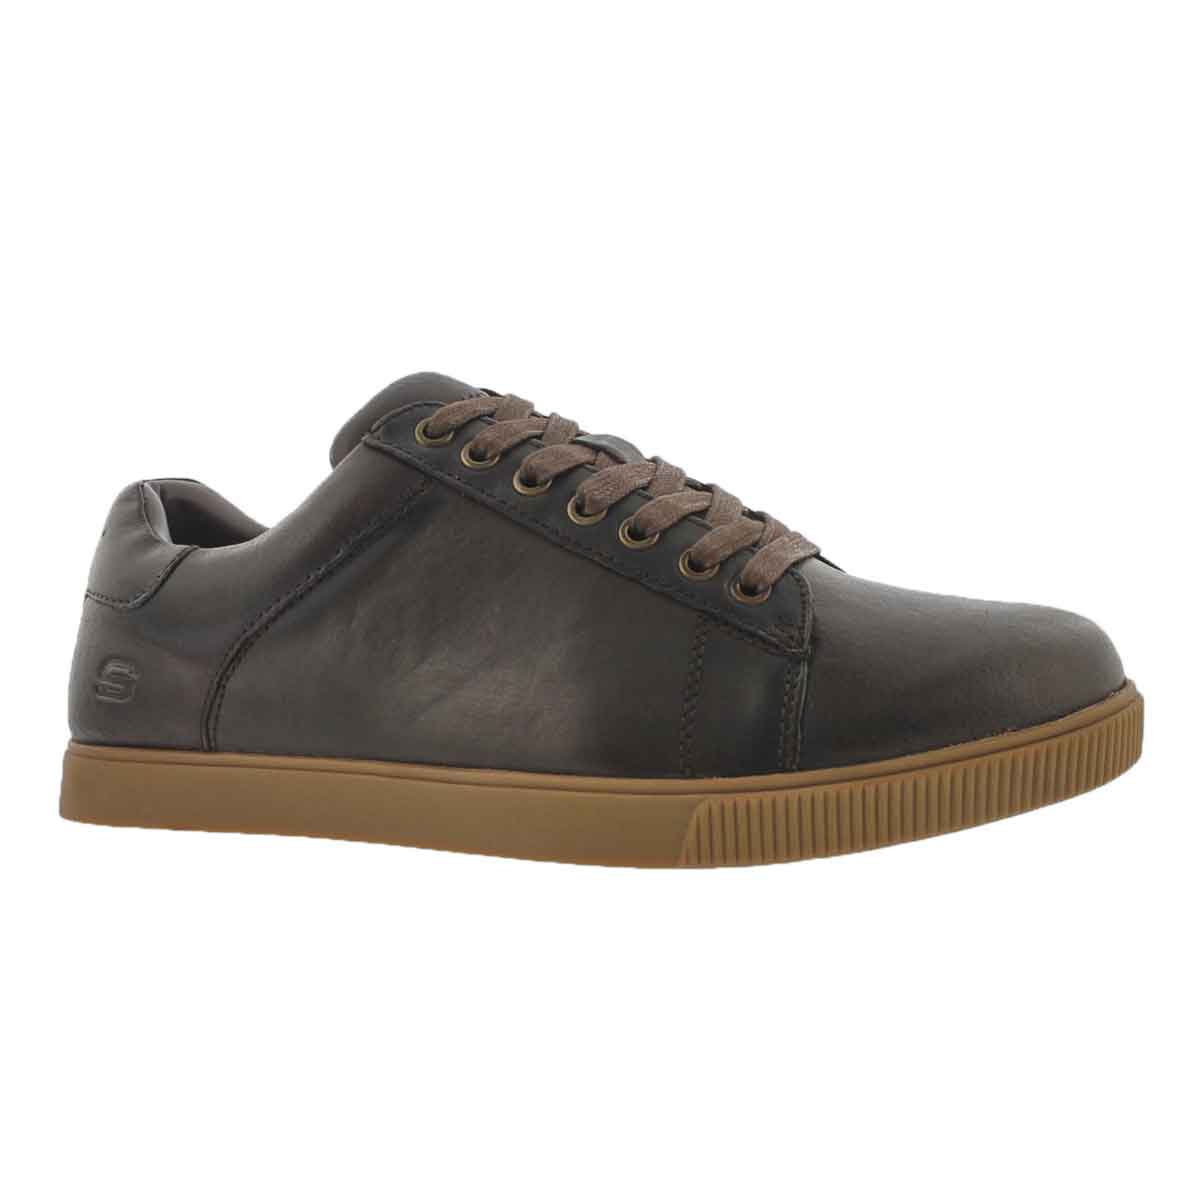 Mns Volden Fandom choc lace up snkr